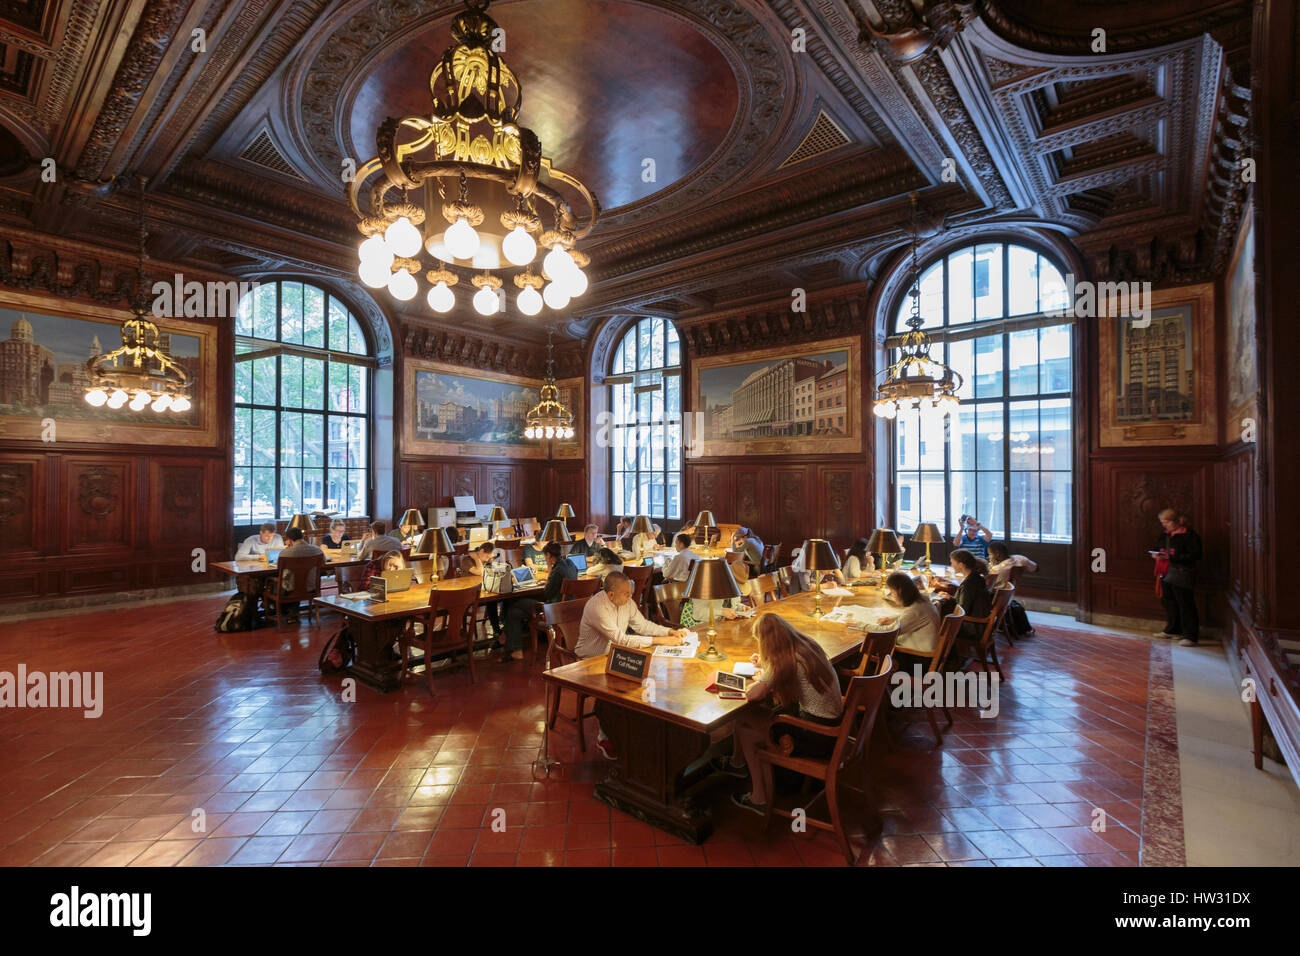 USA, New York, New York City, Manhattan, National Public Library, DeWitt Wallace Periodicals Room - Stock Image